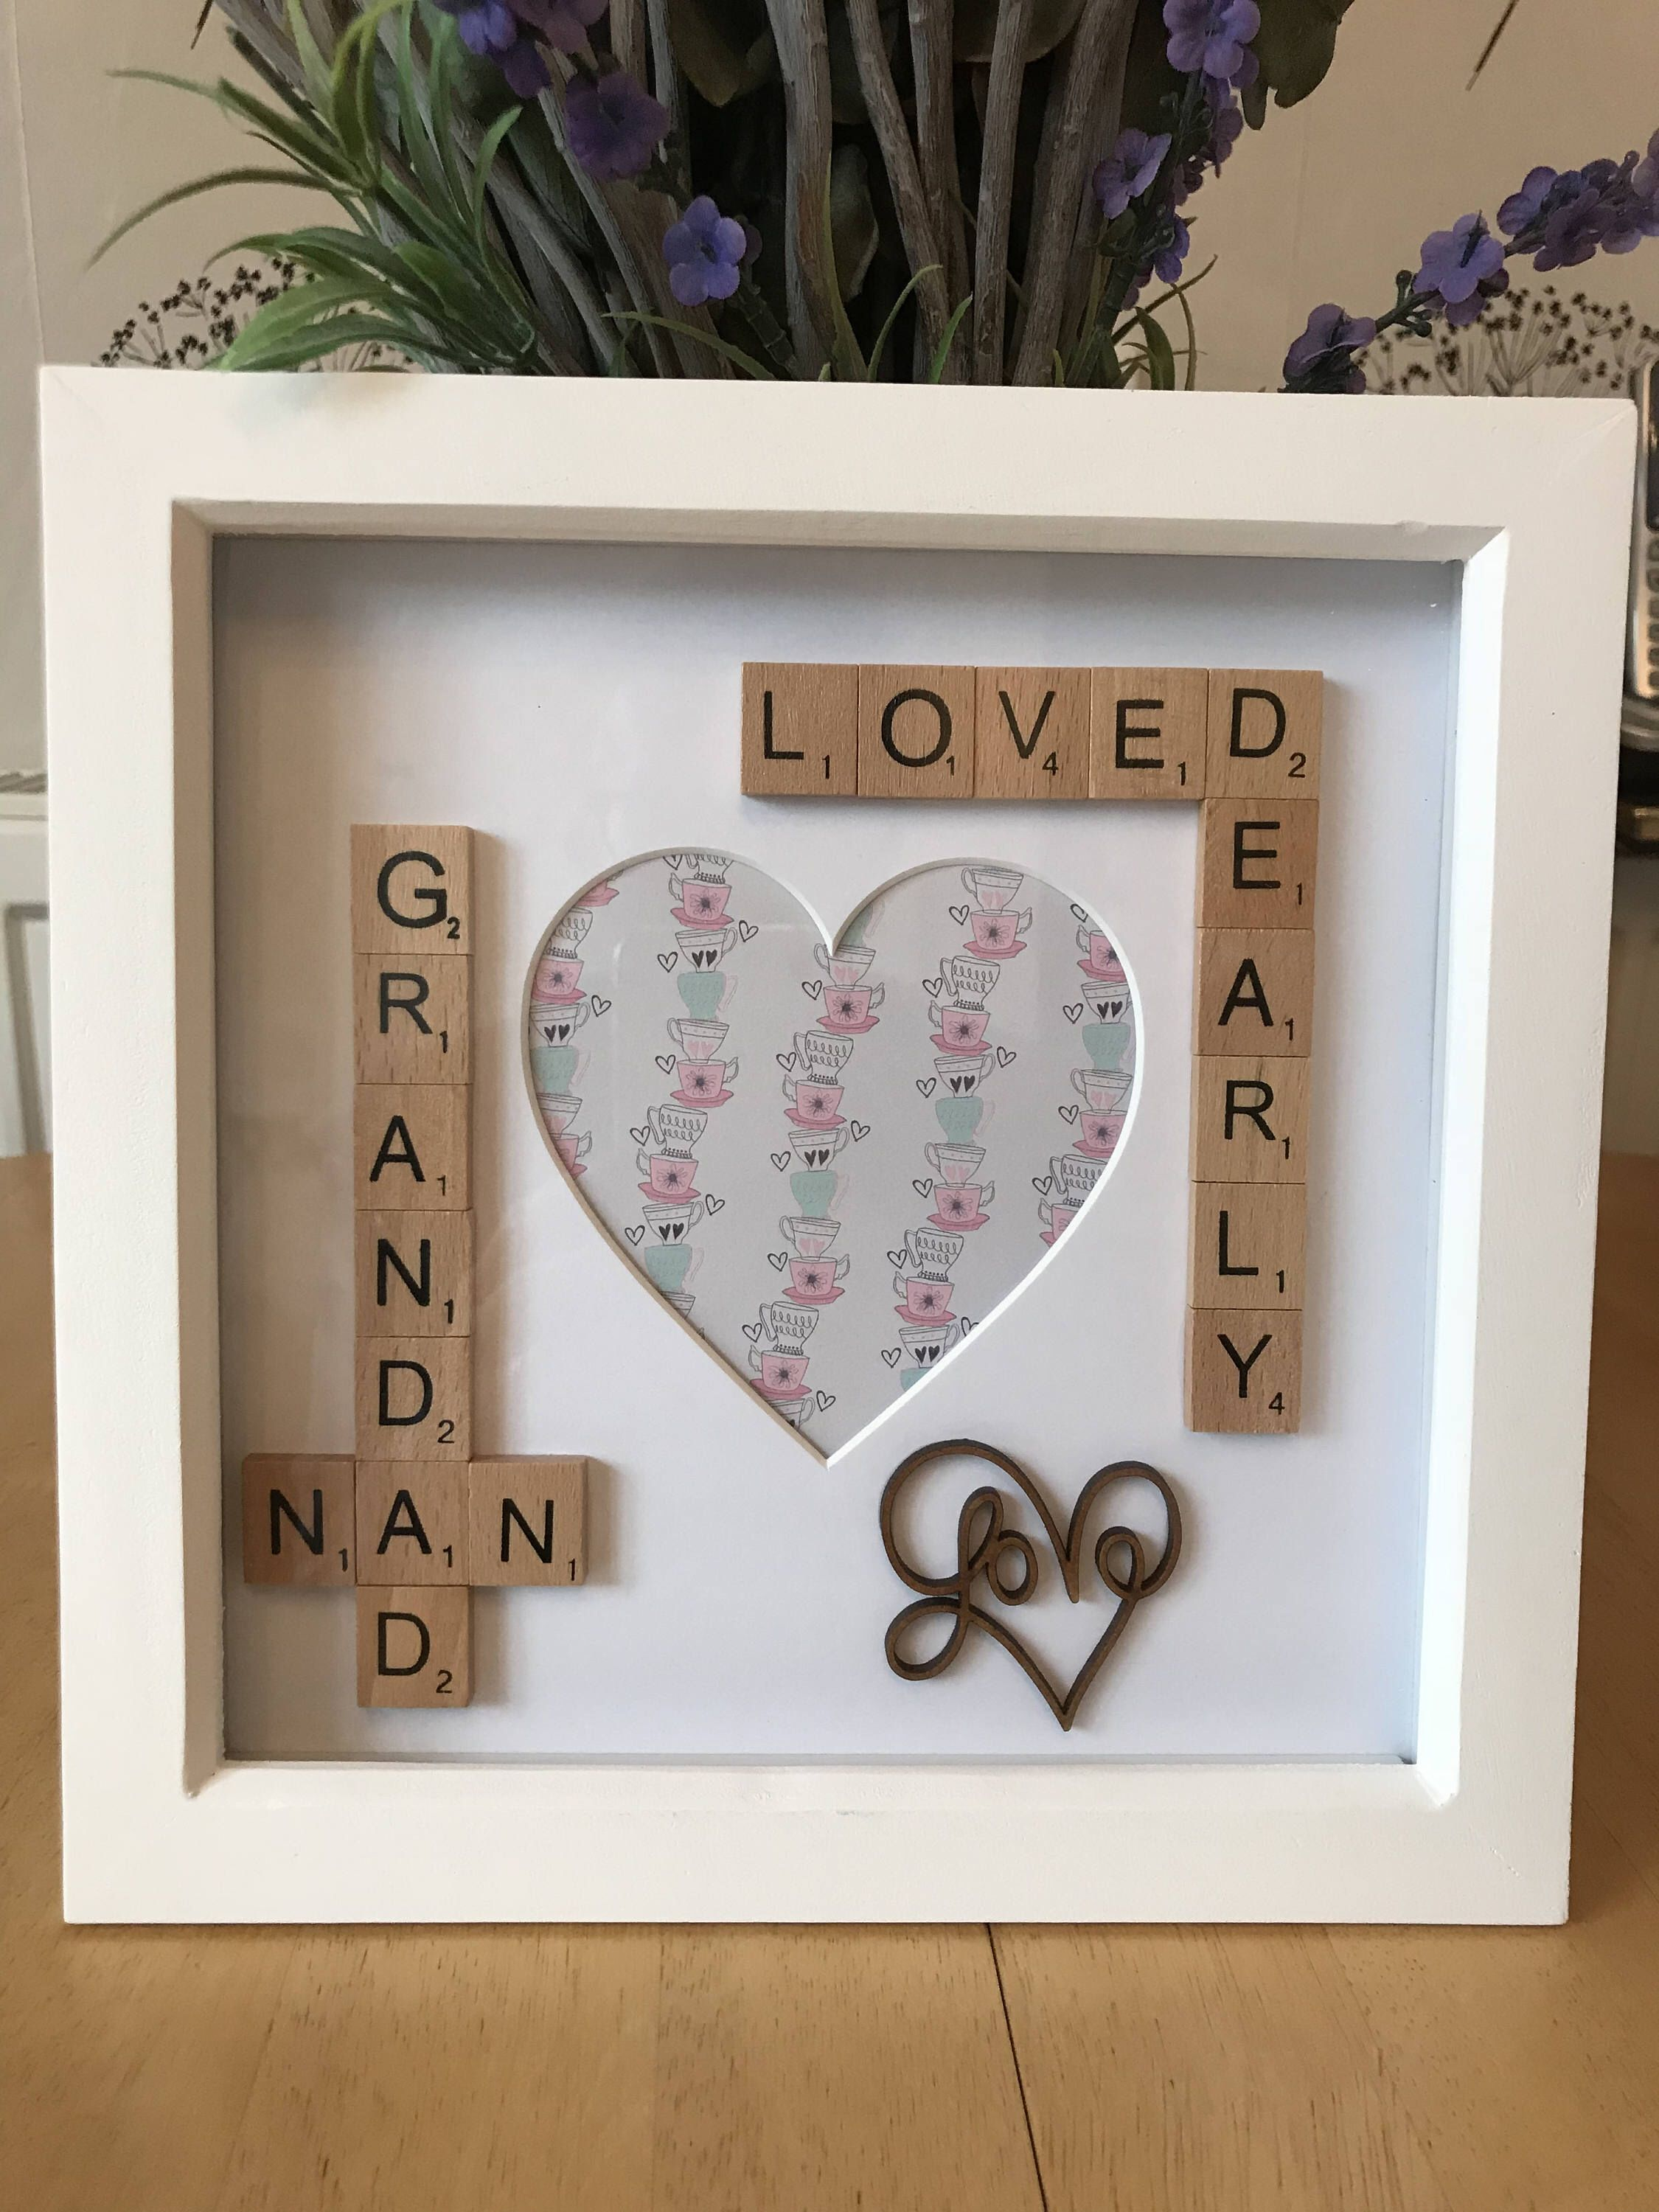 Nan Nana Grandma Grandad Scrabble Photo Box Frame Gift Idea Gift For Grandparents Heart Photo Frame Loved Dearly Christmas Gift Idea Grandp Scrabble Marco